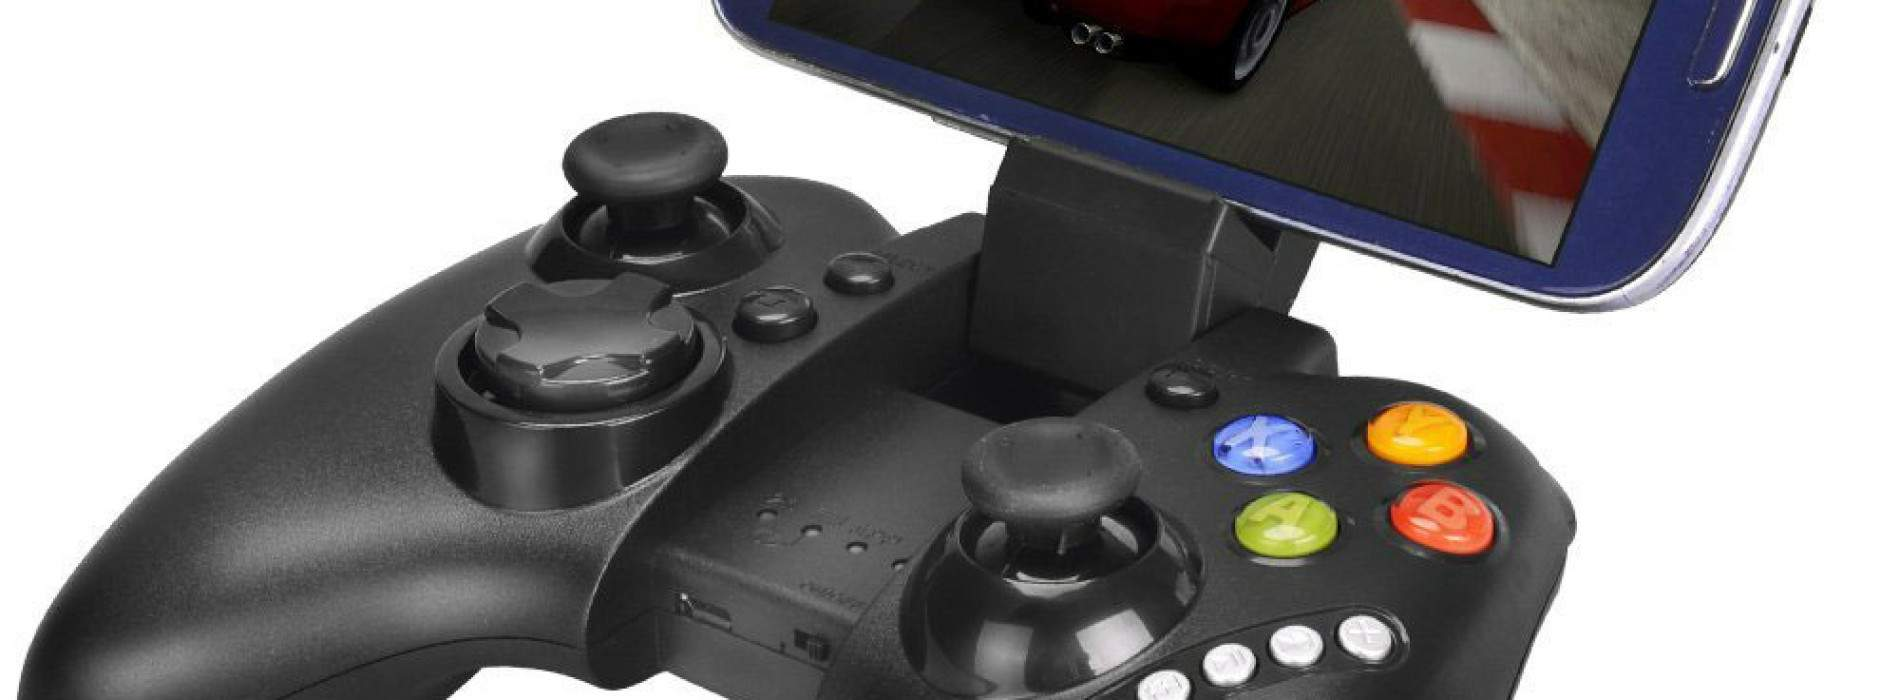 Concurso: iPega Bluetooth GamePad 9021